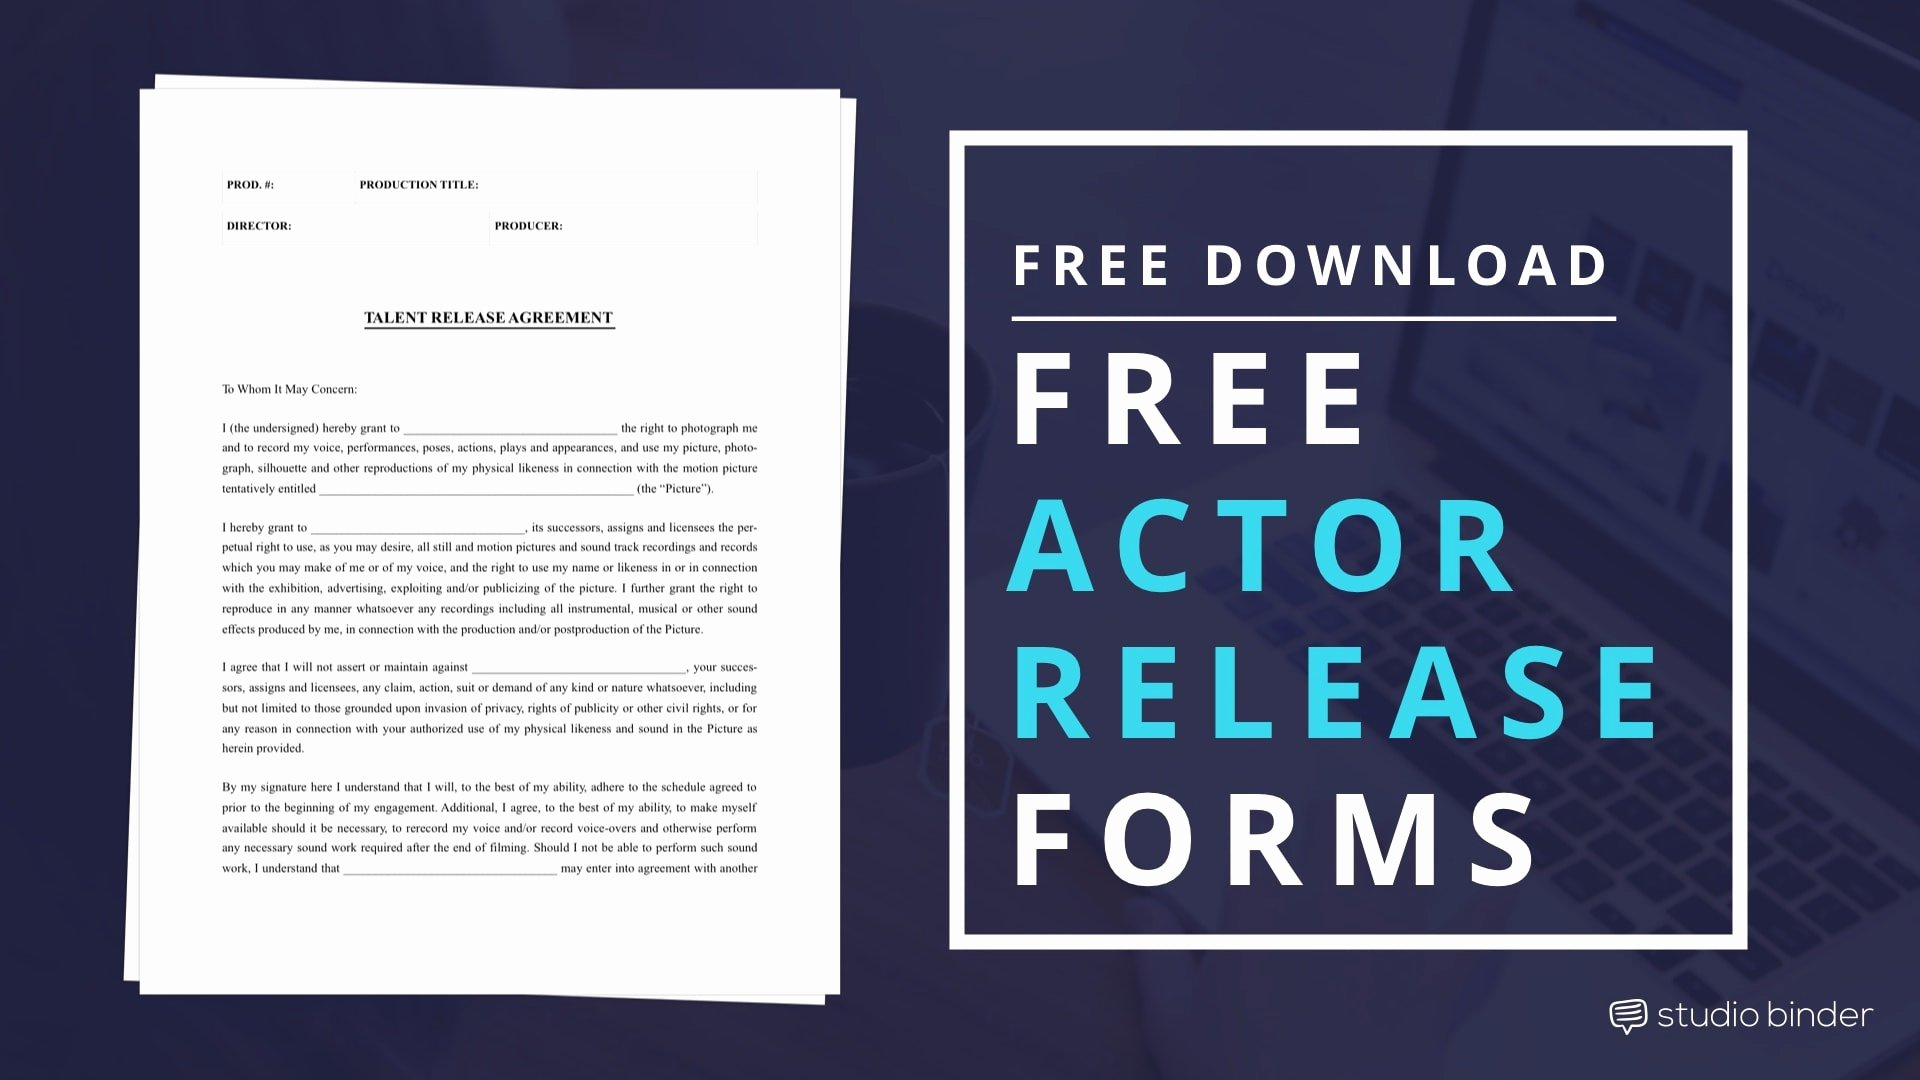 Film Release forms Templates Luxury Download Free Actor Release form Template